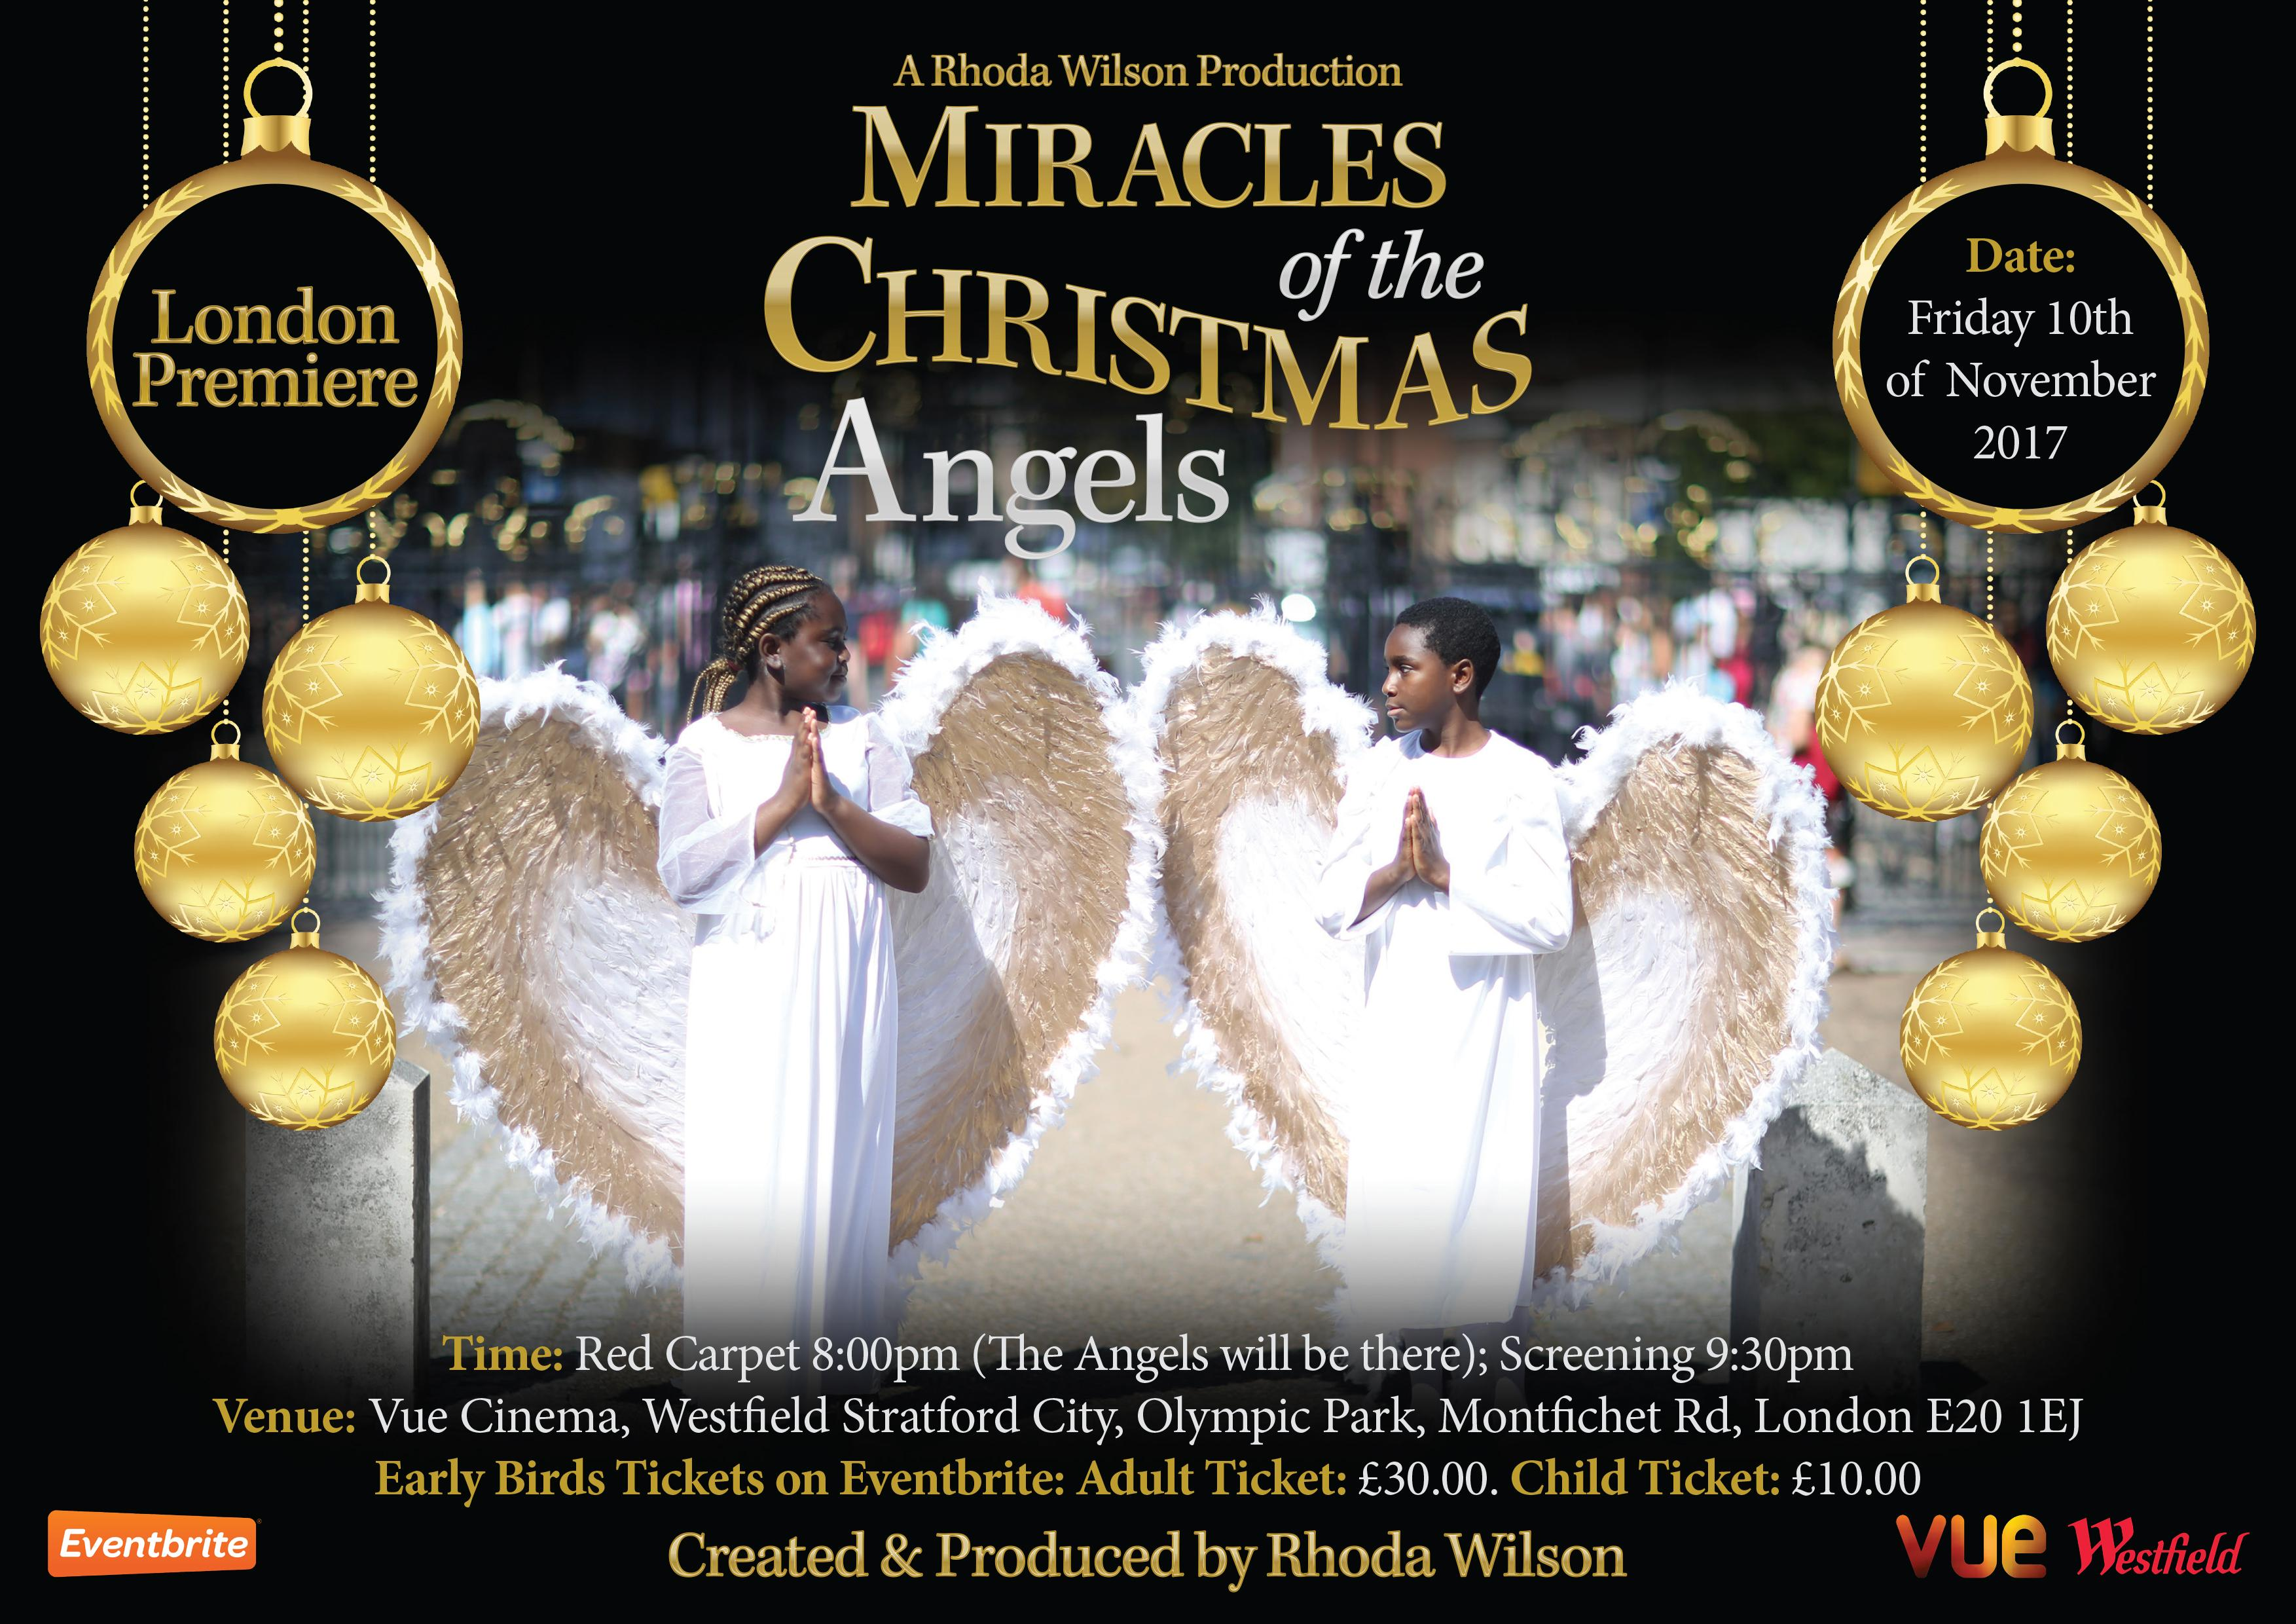 Mircales Of The Christmas Angels